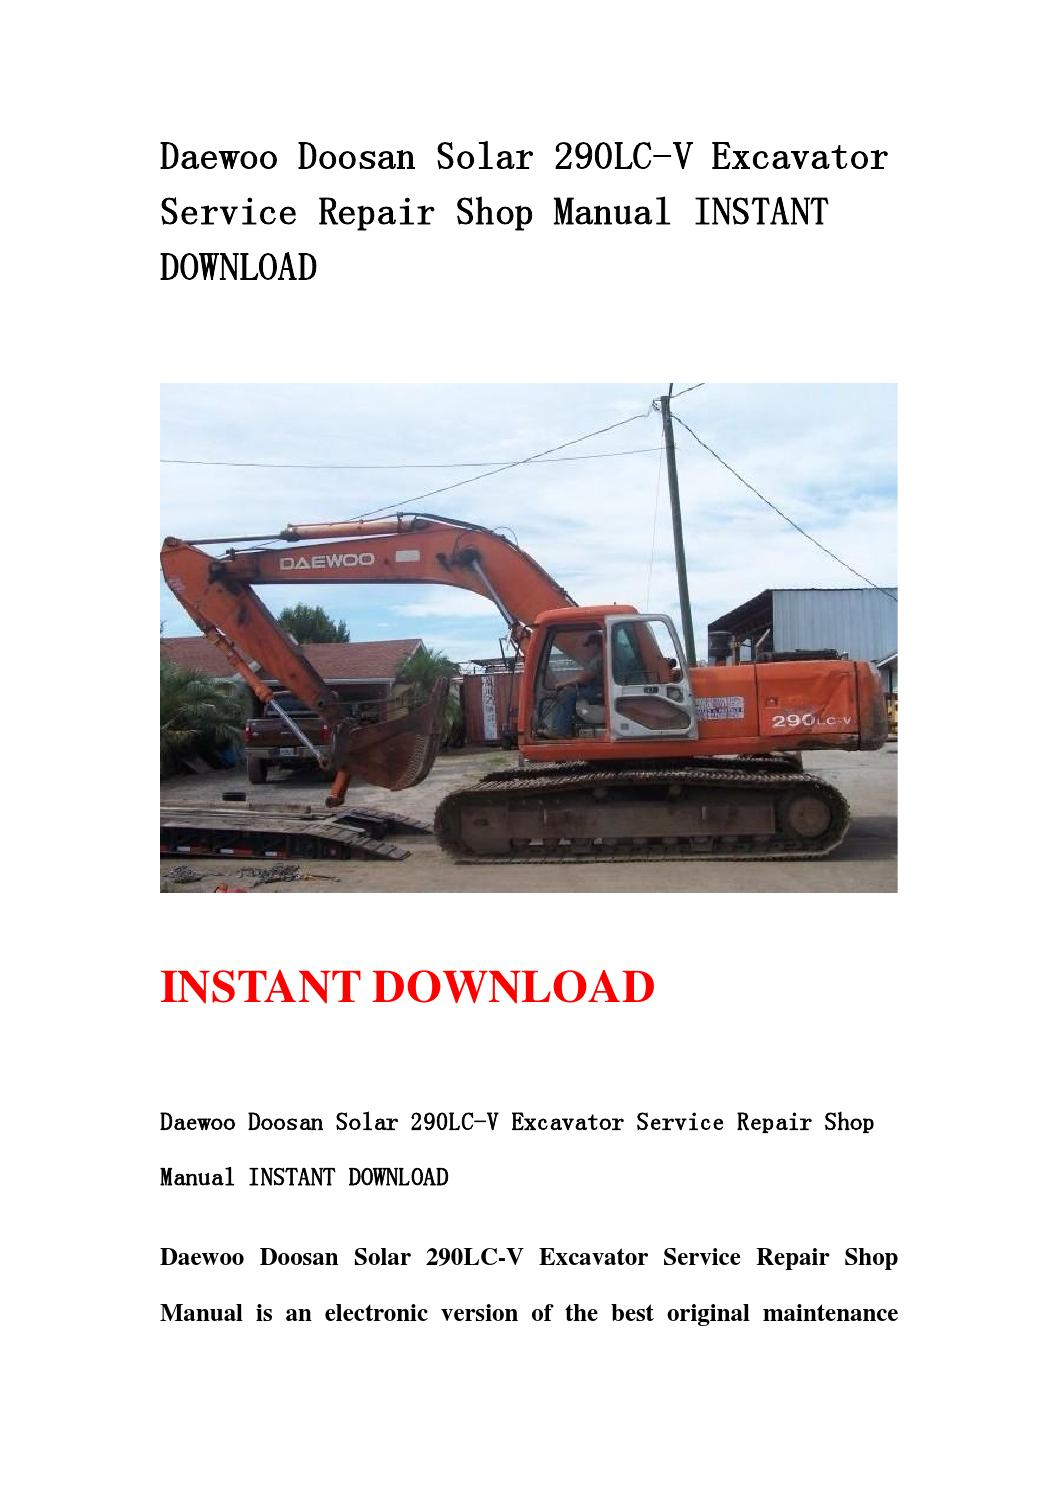 Daewoo doosan solar 290lc v excavator service repair shop manual instant  download by jshenfjse - issuu